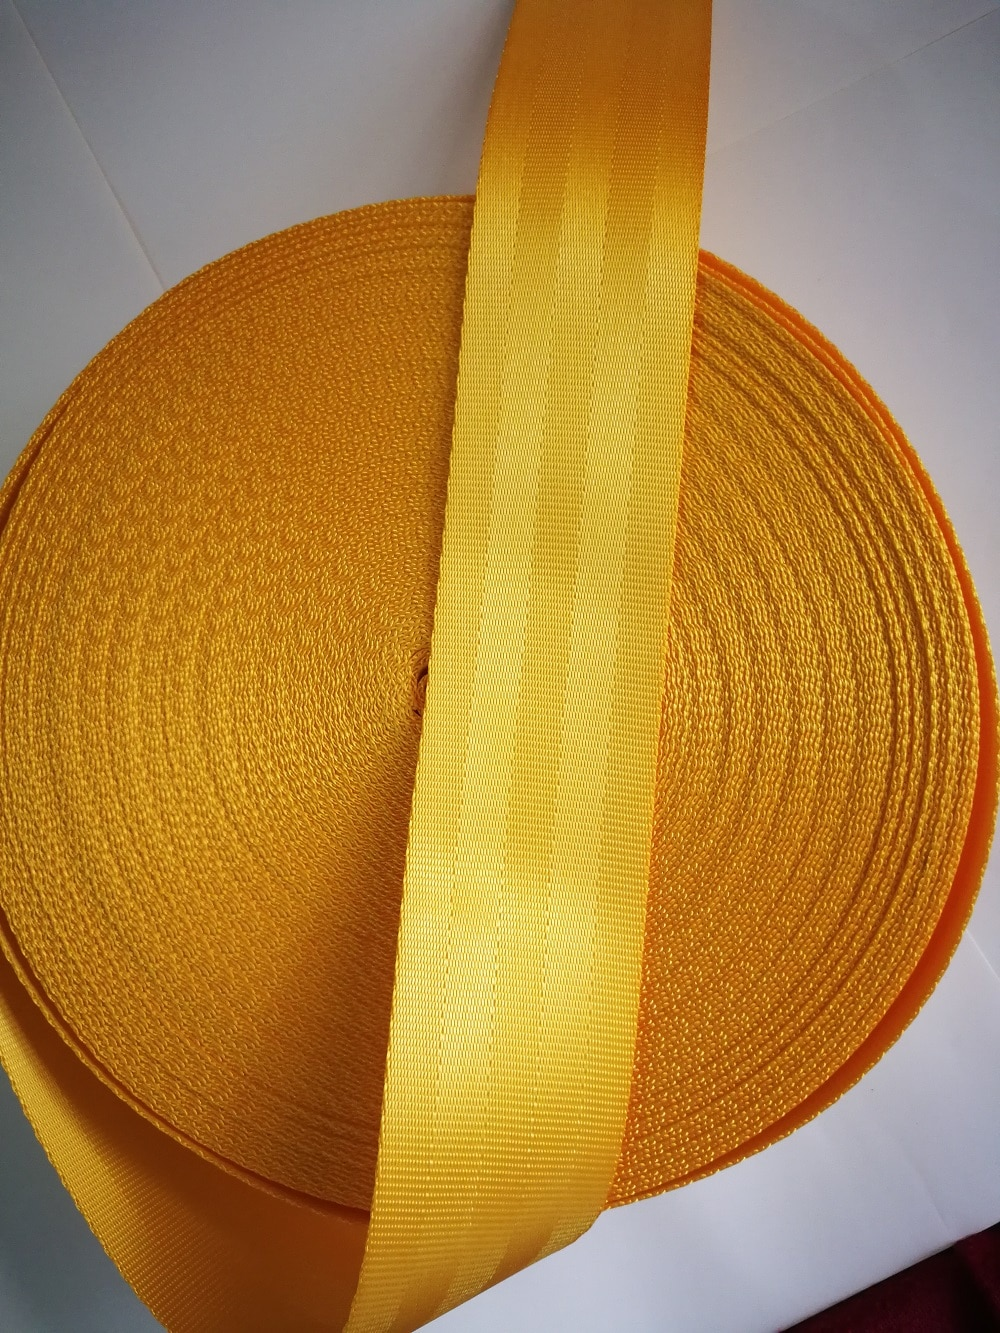 XIMOOR 4-36Meter Yellow Car Seat Belt Webbing Universal Car Personalized Modification Seat Belt Webbing Car Accessories